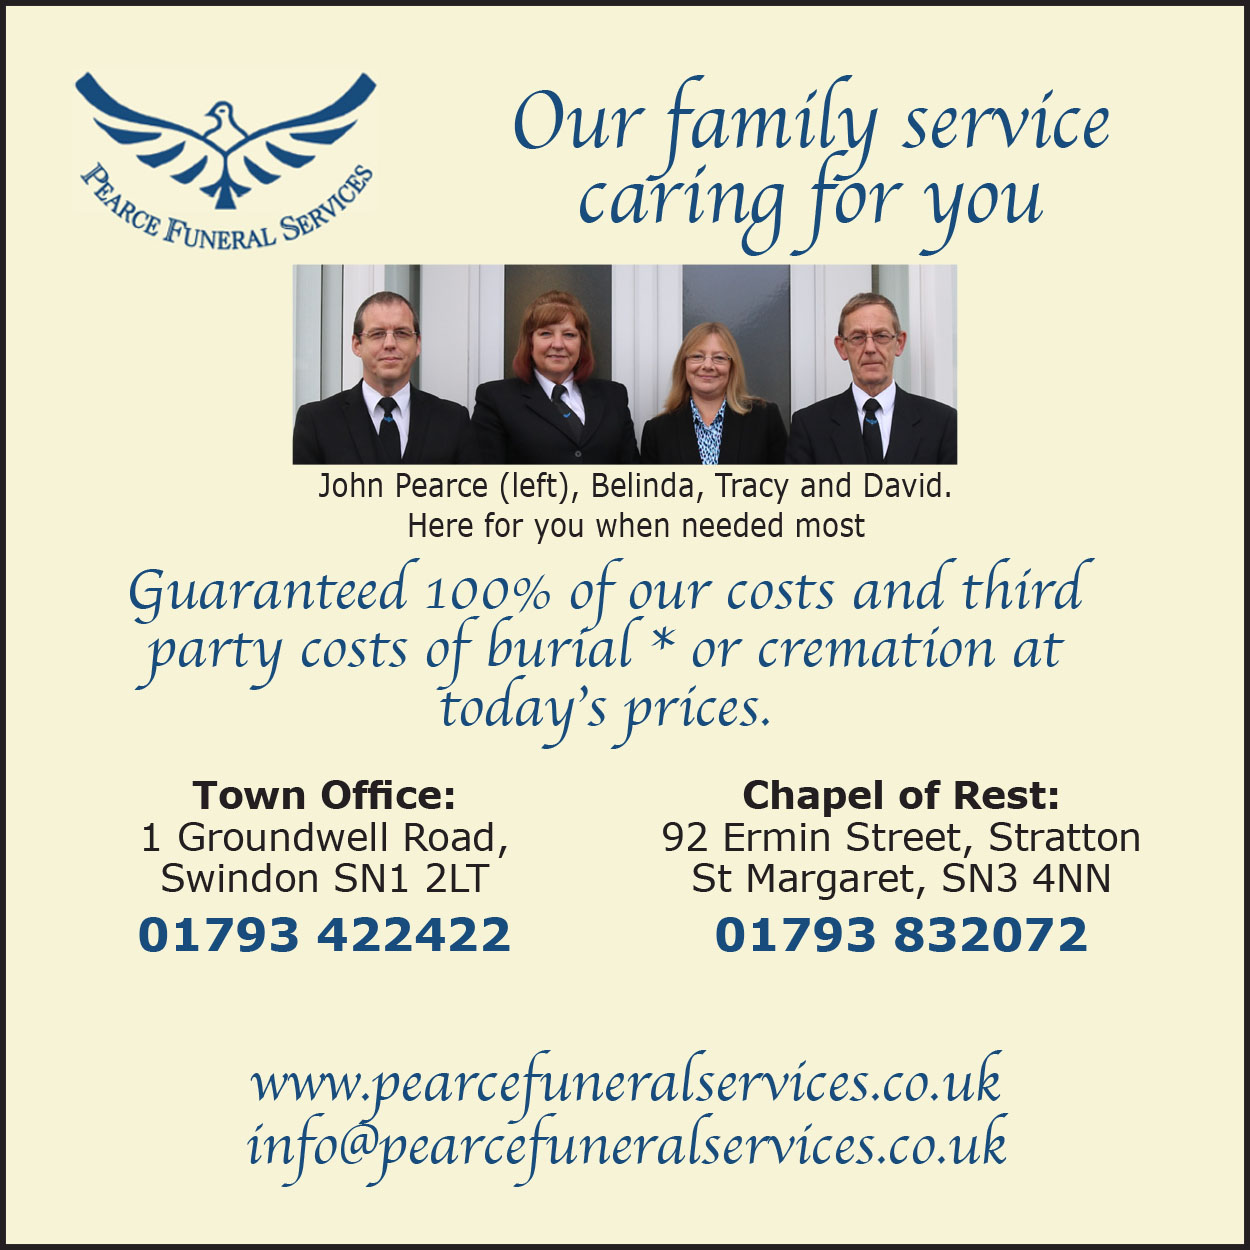 Pearce Funeral Services - Leave till May 20